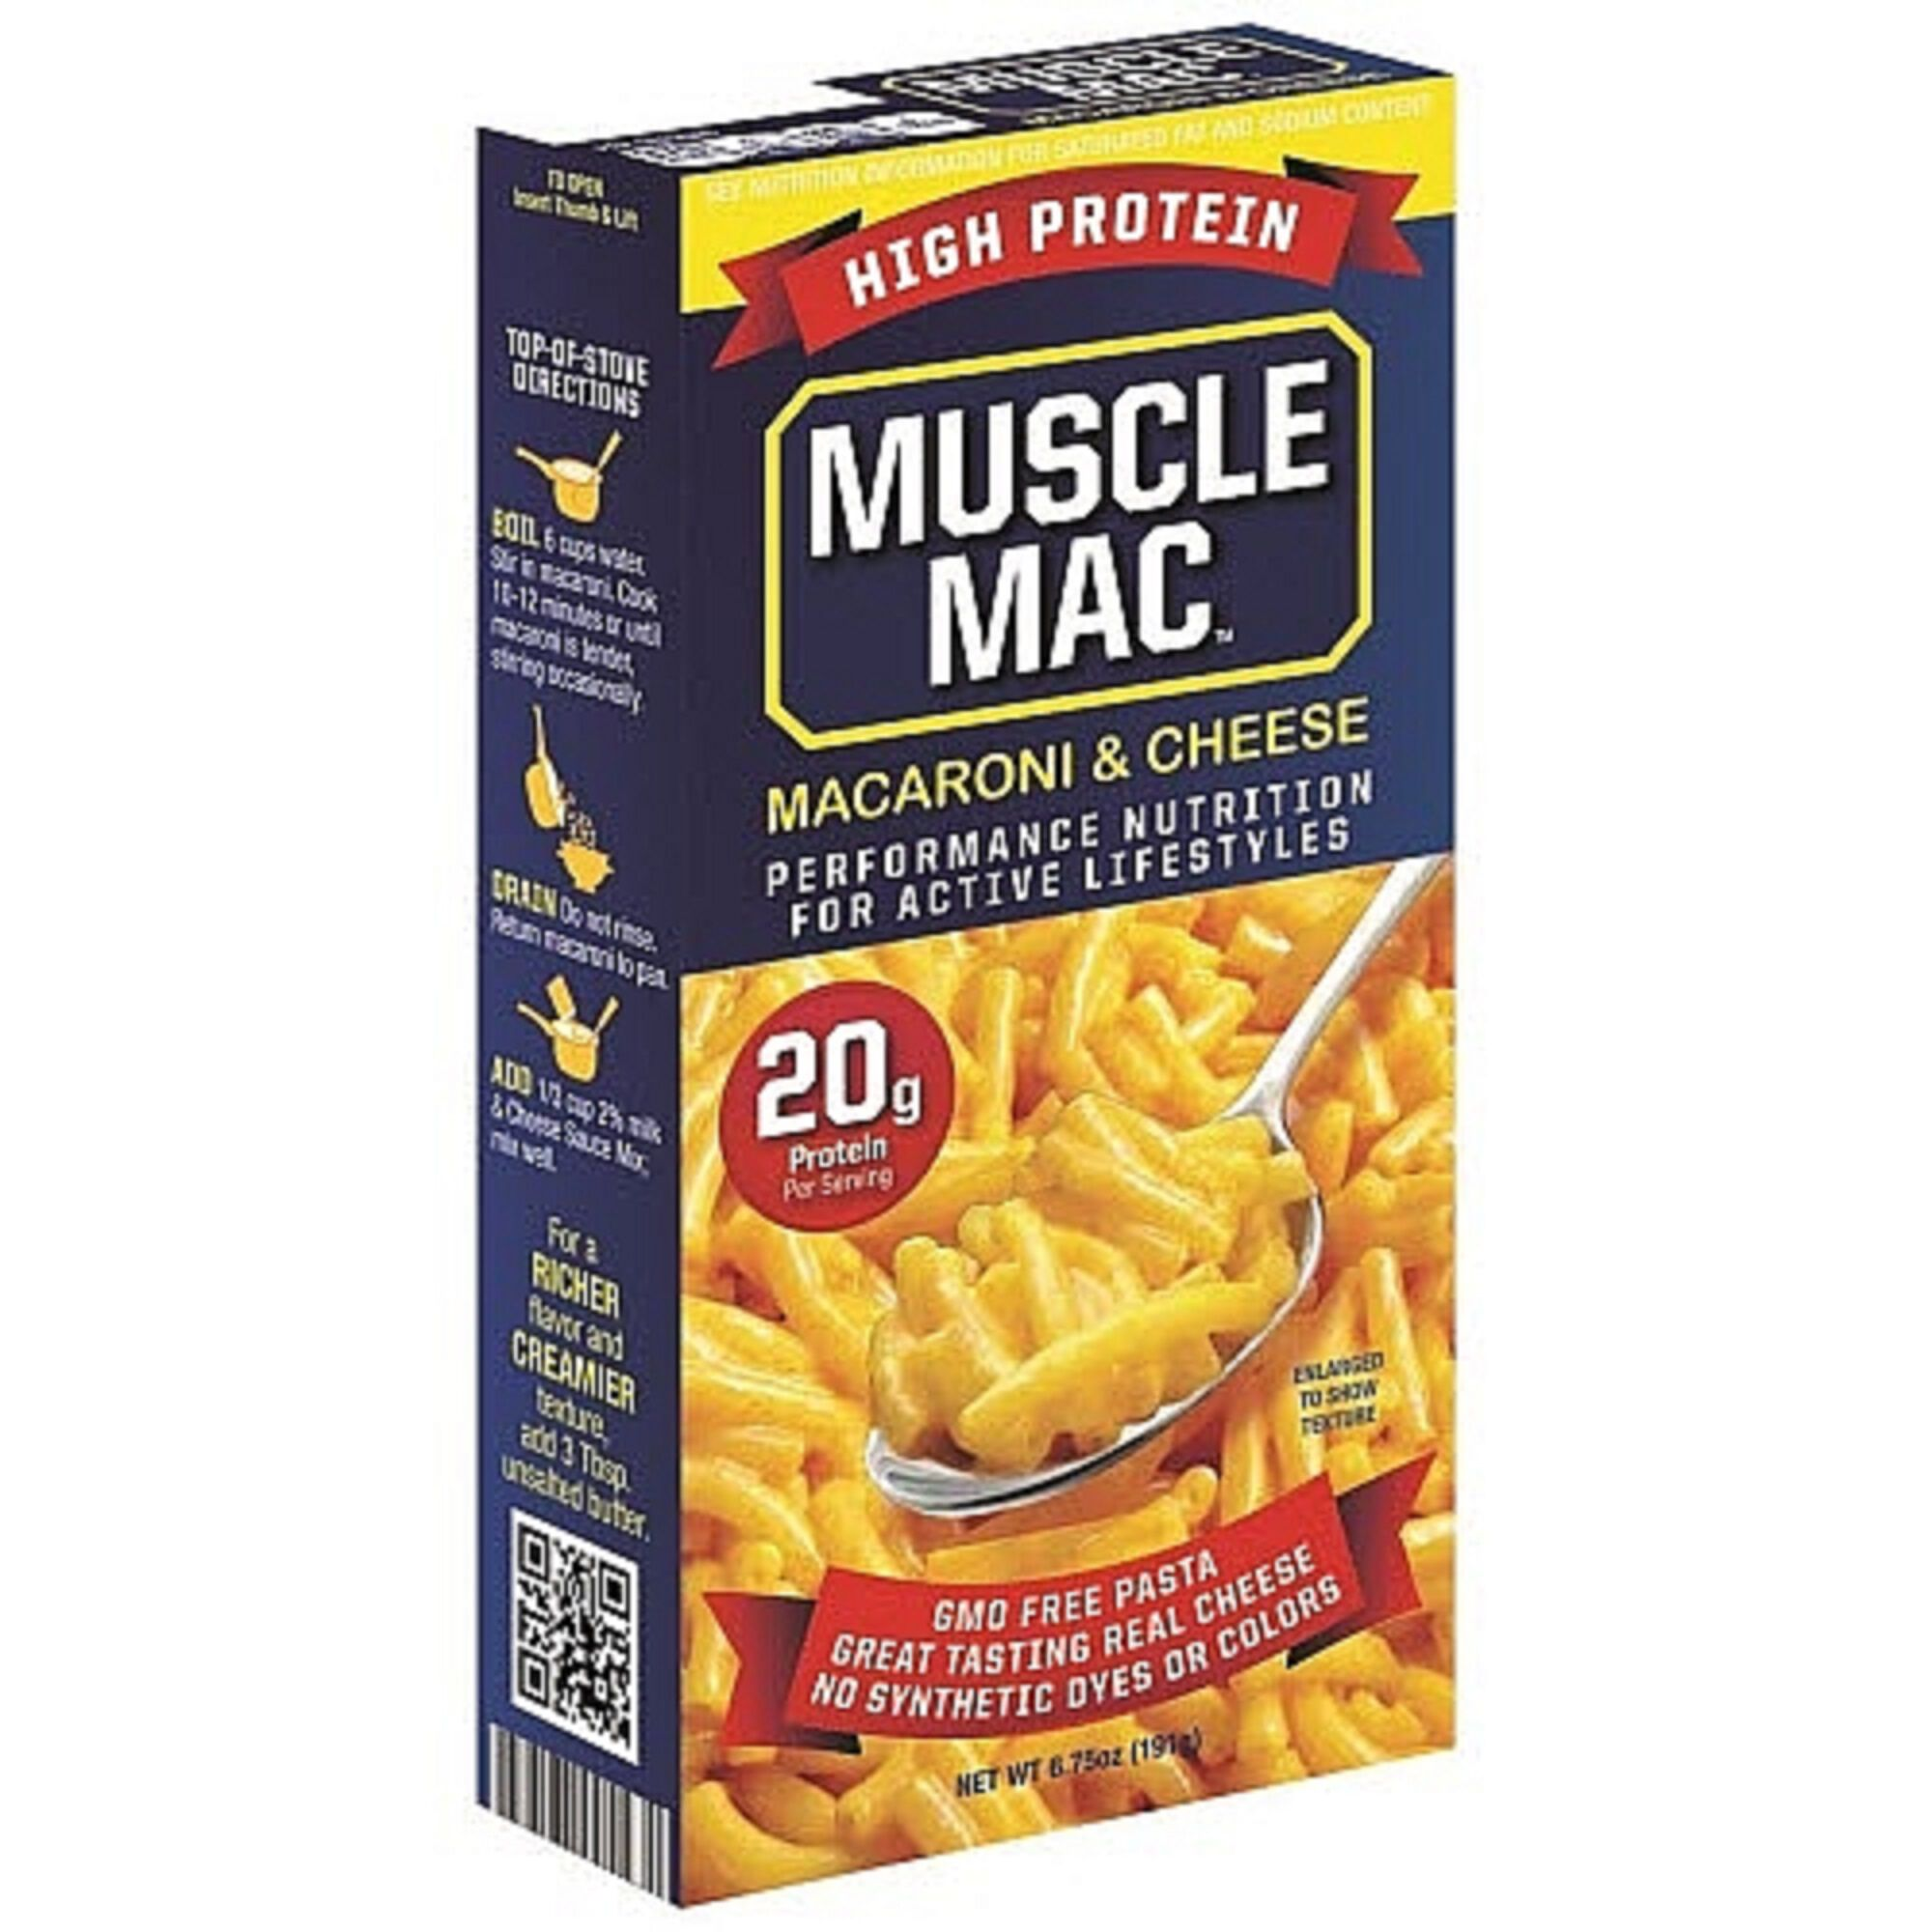 Muscle Mac Macaroni Cheese Gnc